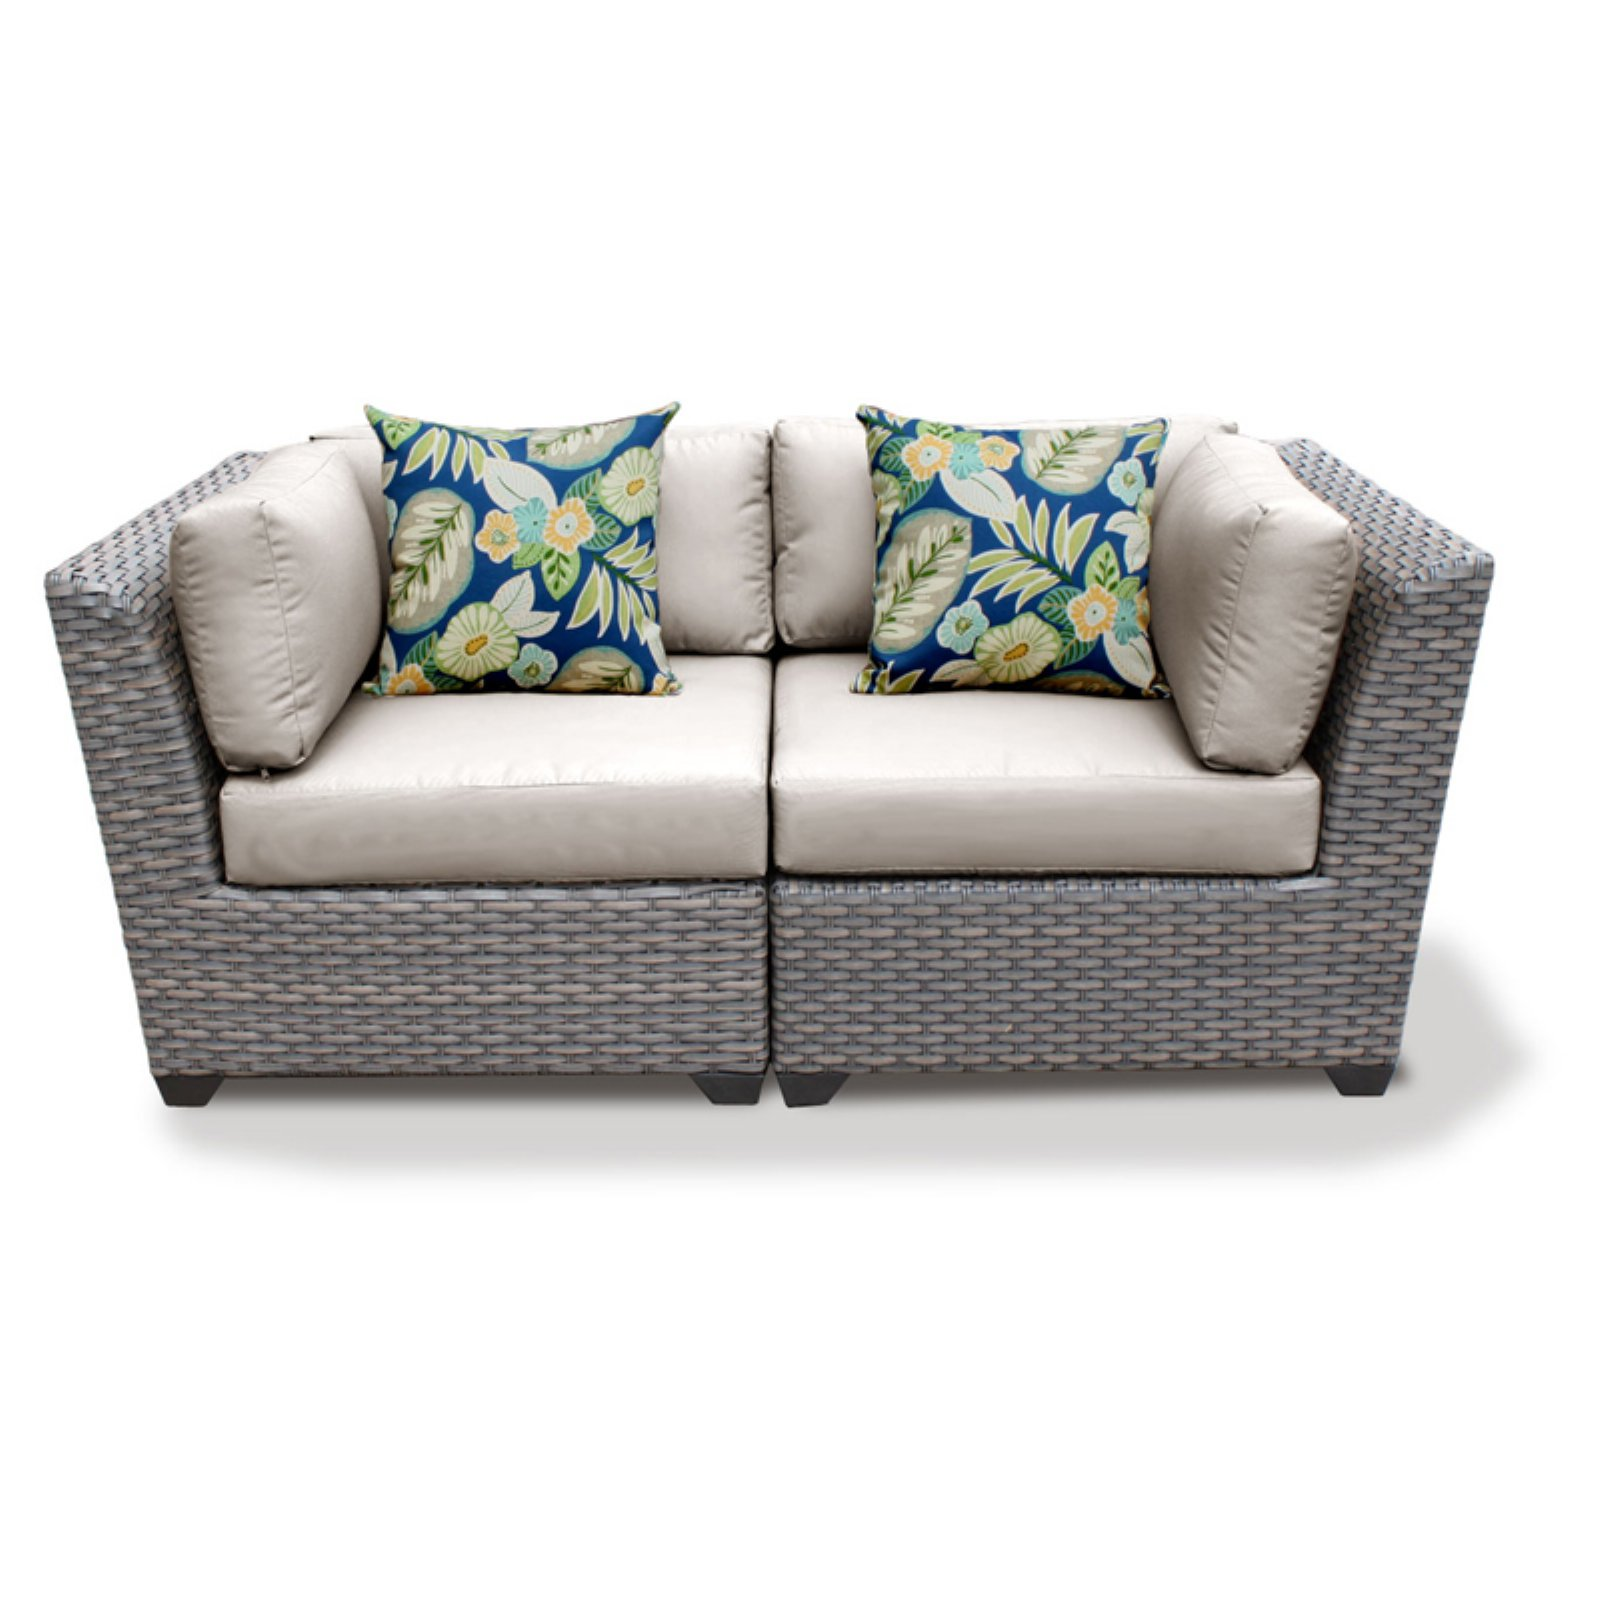 TK Classics Florence Wicker 2 Piece Patio Conversation Set with 2 Sets of Cushion Covers